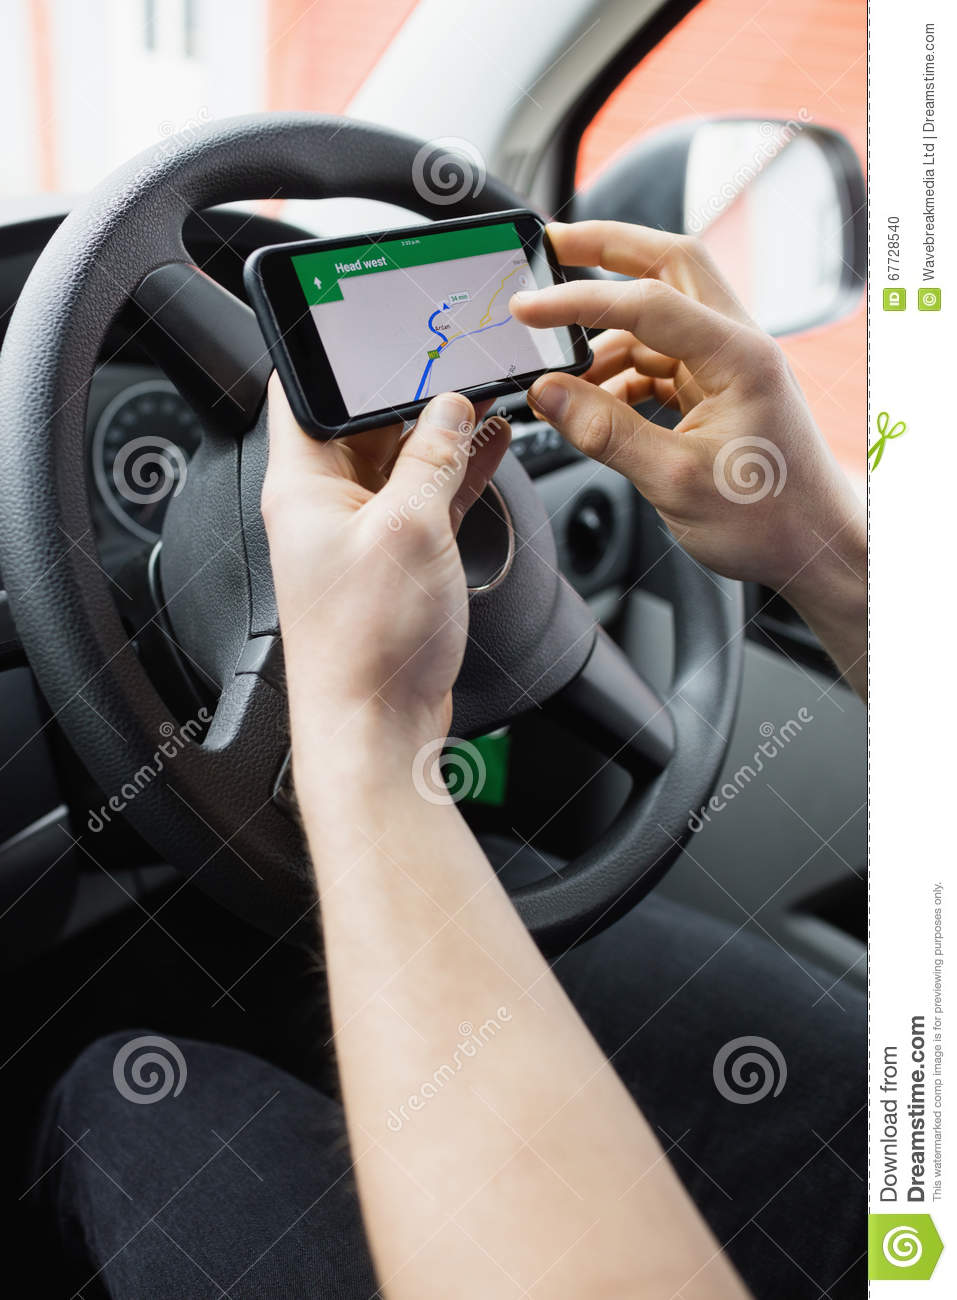 close up of man using smartphone while driving car royalty free stock photography. Black Bedroom Furniture Sets. Home Design Ideas